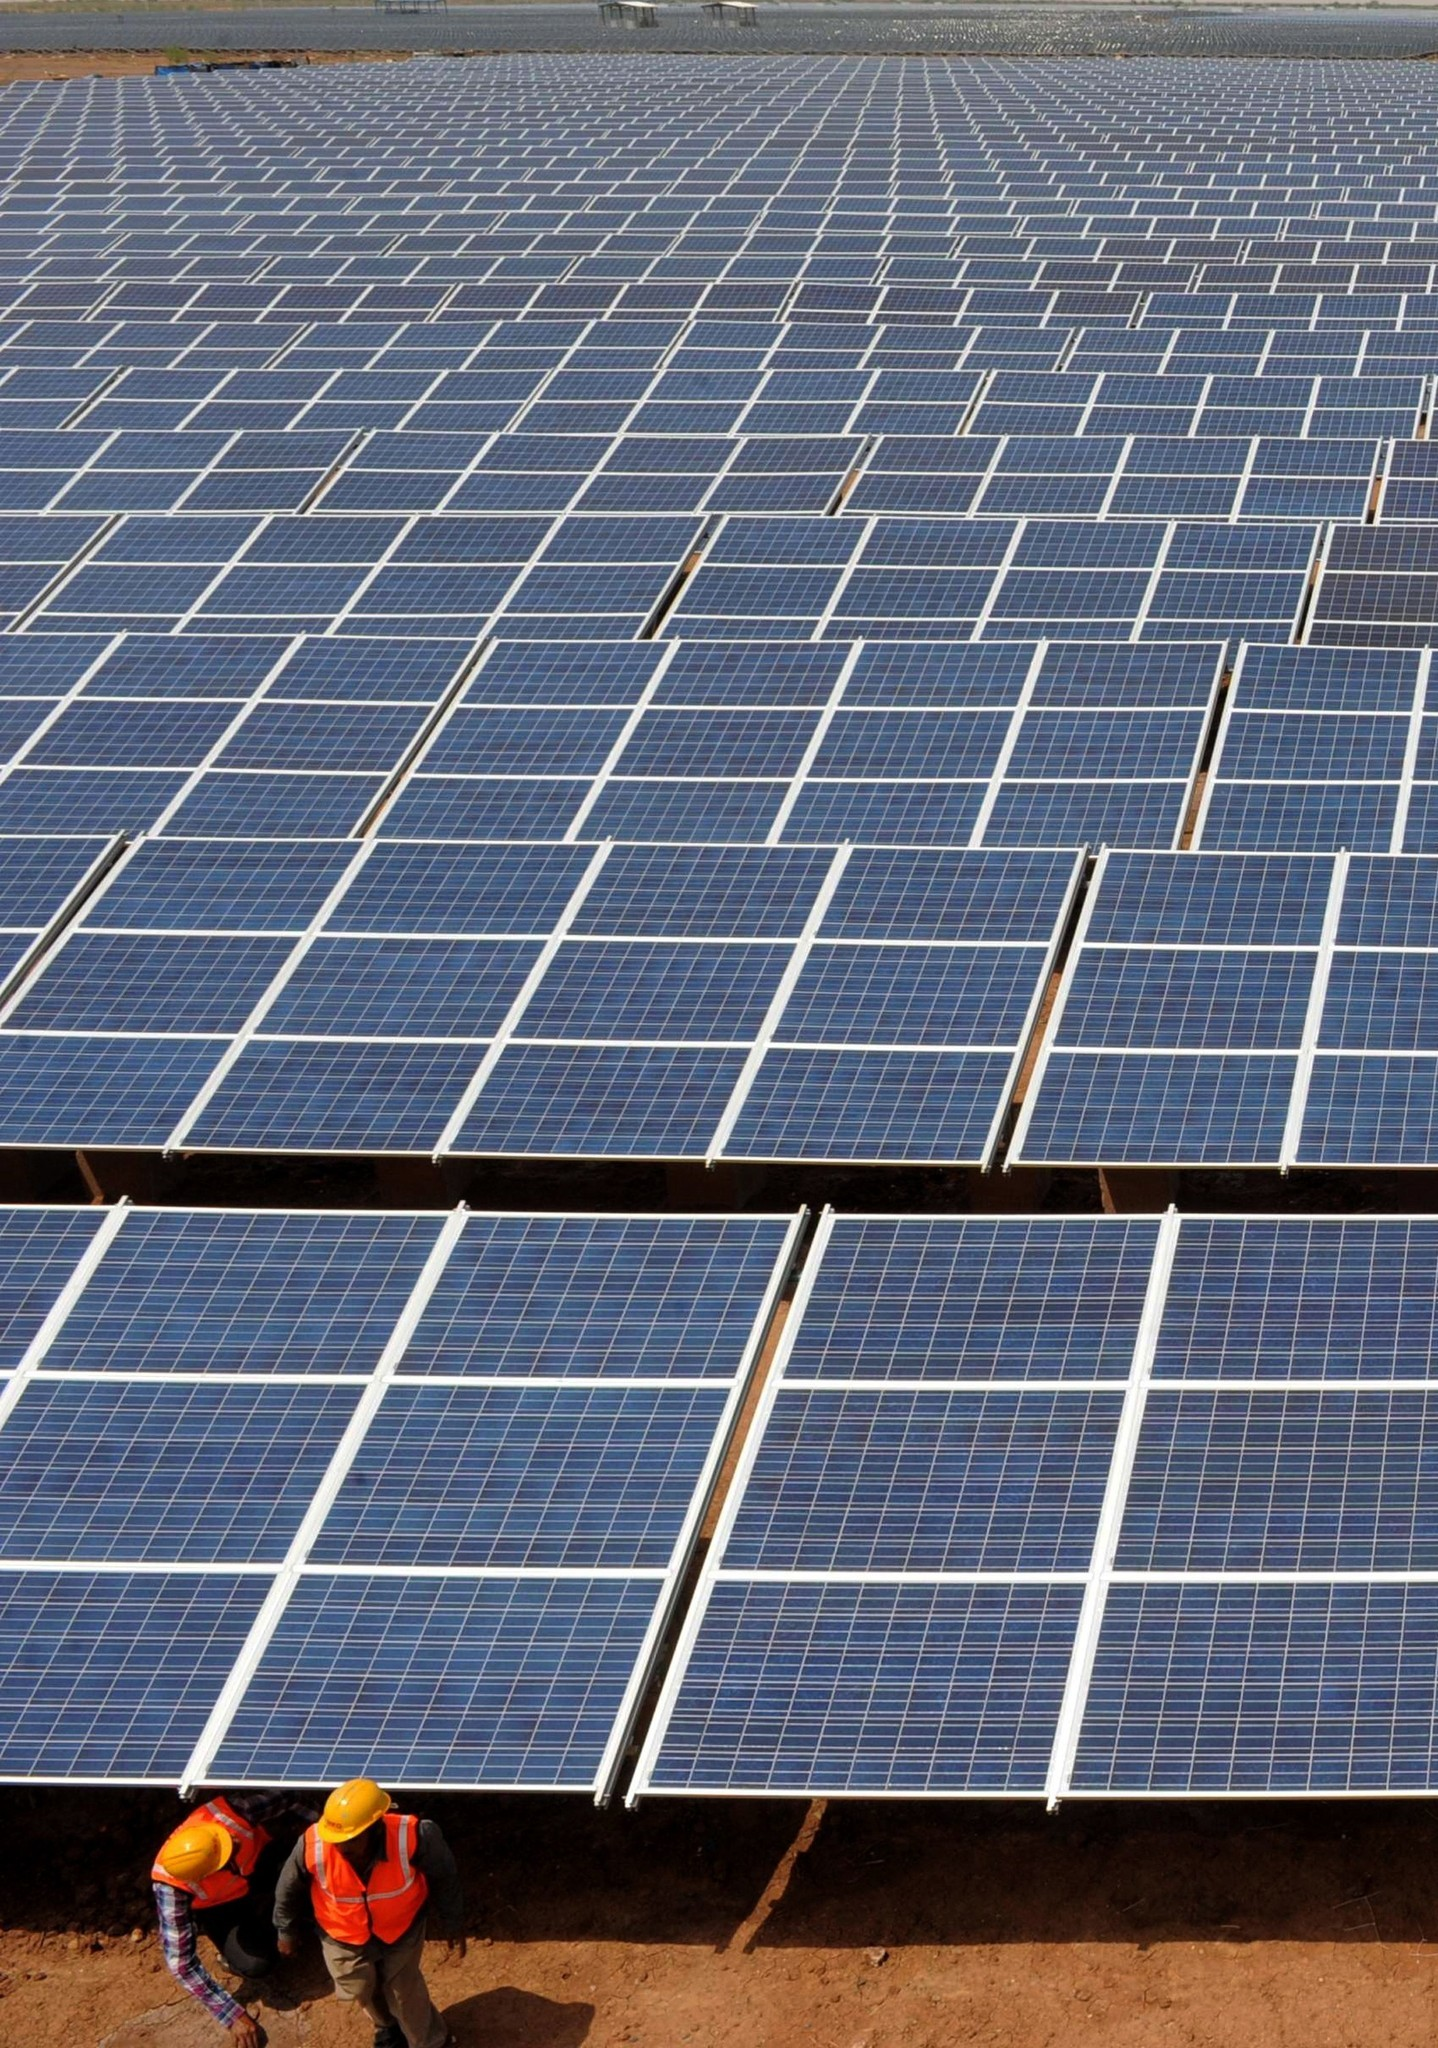 Fpl To Invest 400 Million On Three Solar Farms Sun Sentinel